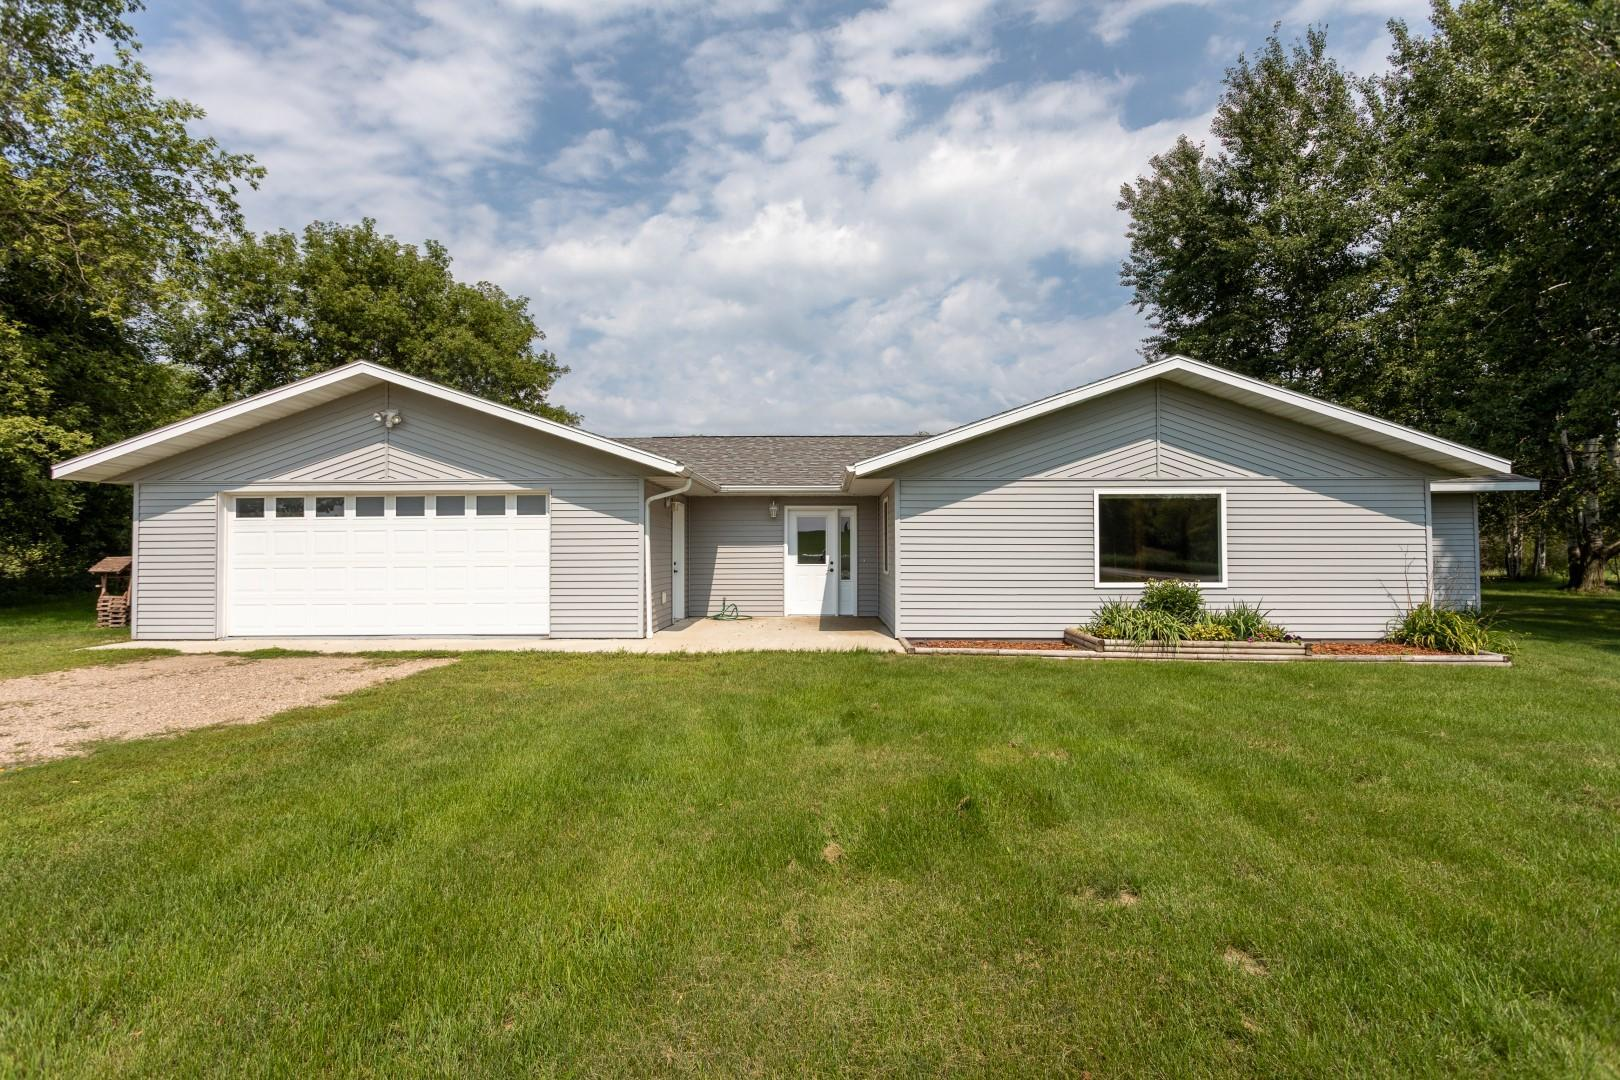 23662 County 14 Property Photo - Browerville, MN real estate listing